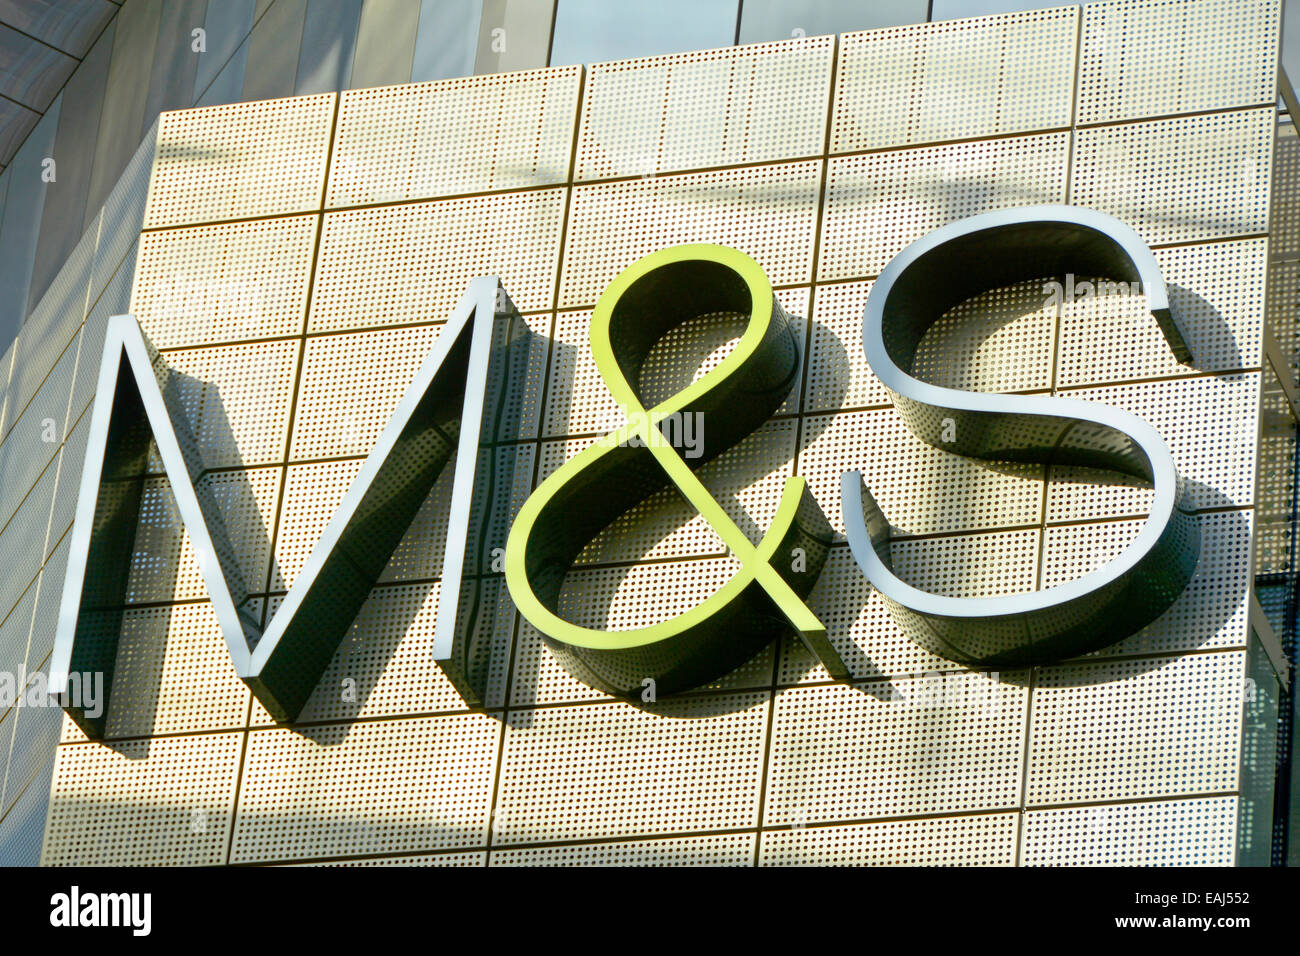 sofaworks westfield stratford red sofa slipcovers clearance city branding sign stock photos images marks and spencer store on exterior wall of a shopping mall image